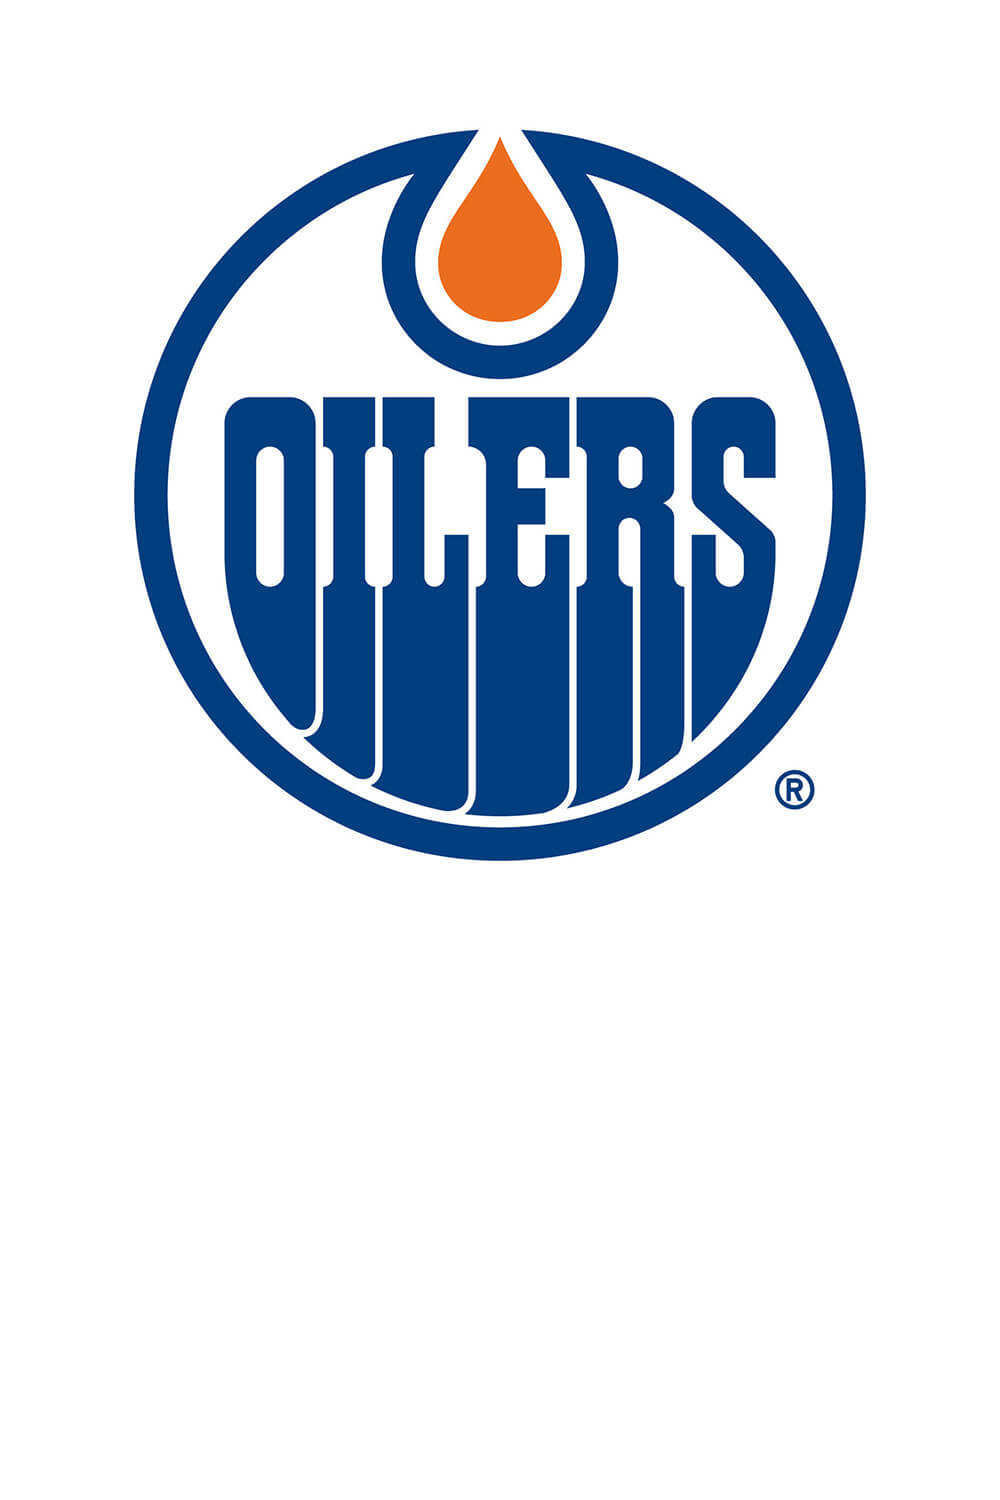 how to draw a oilers symbol